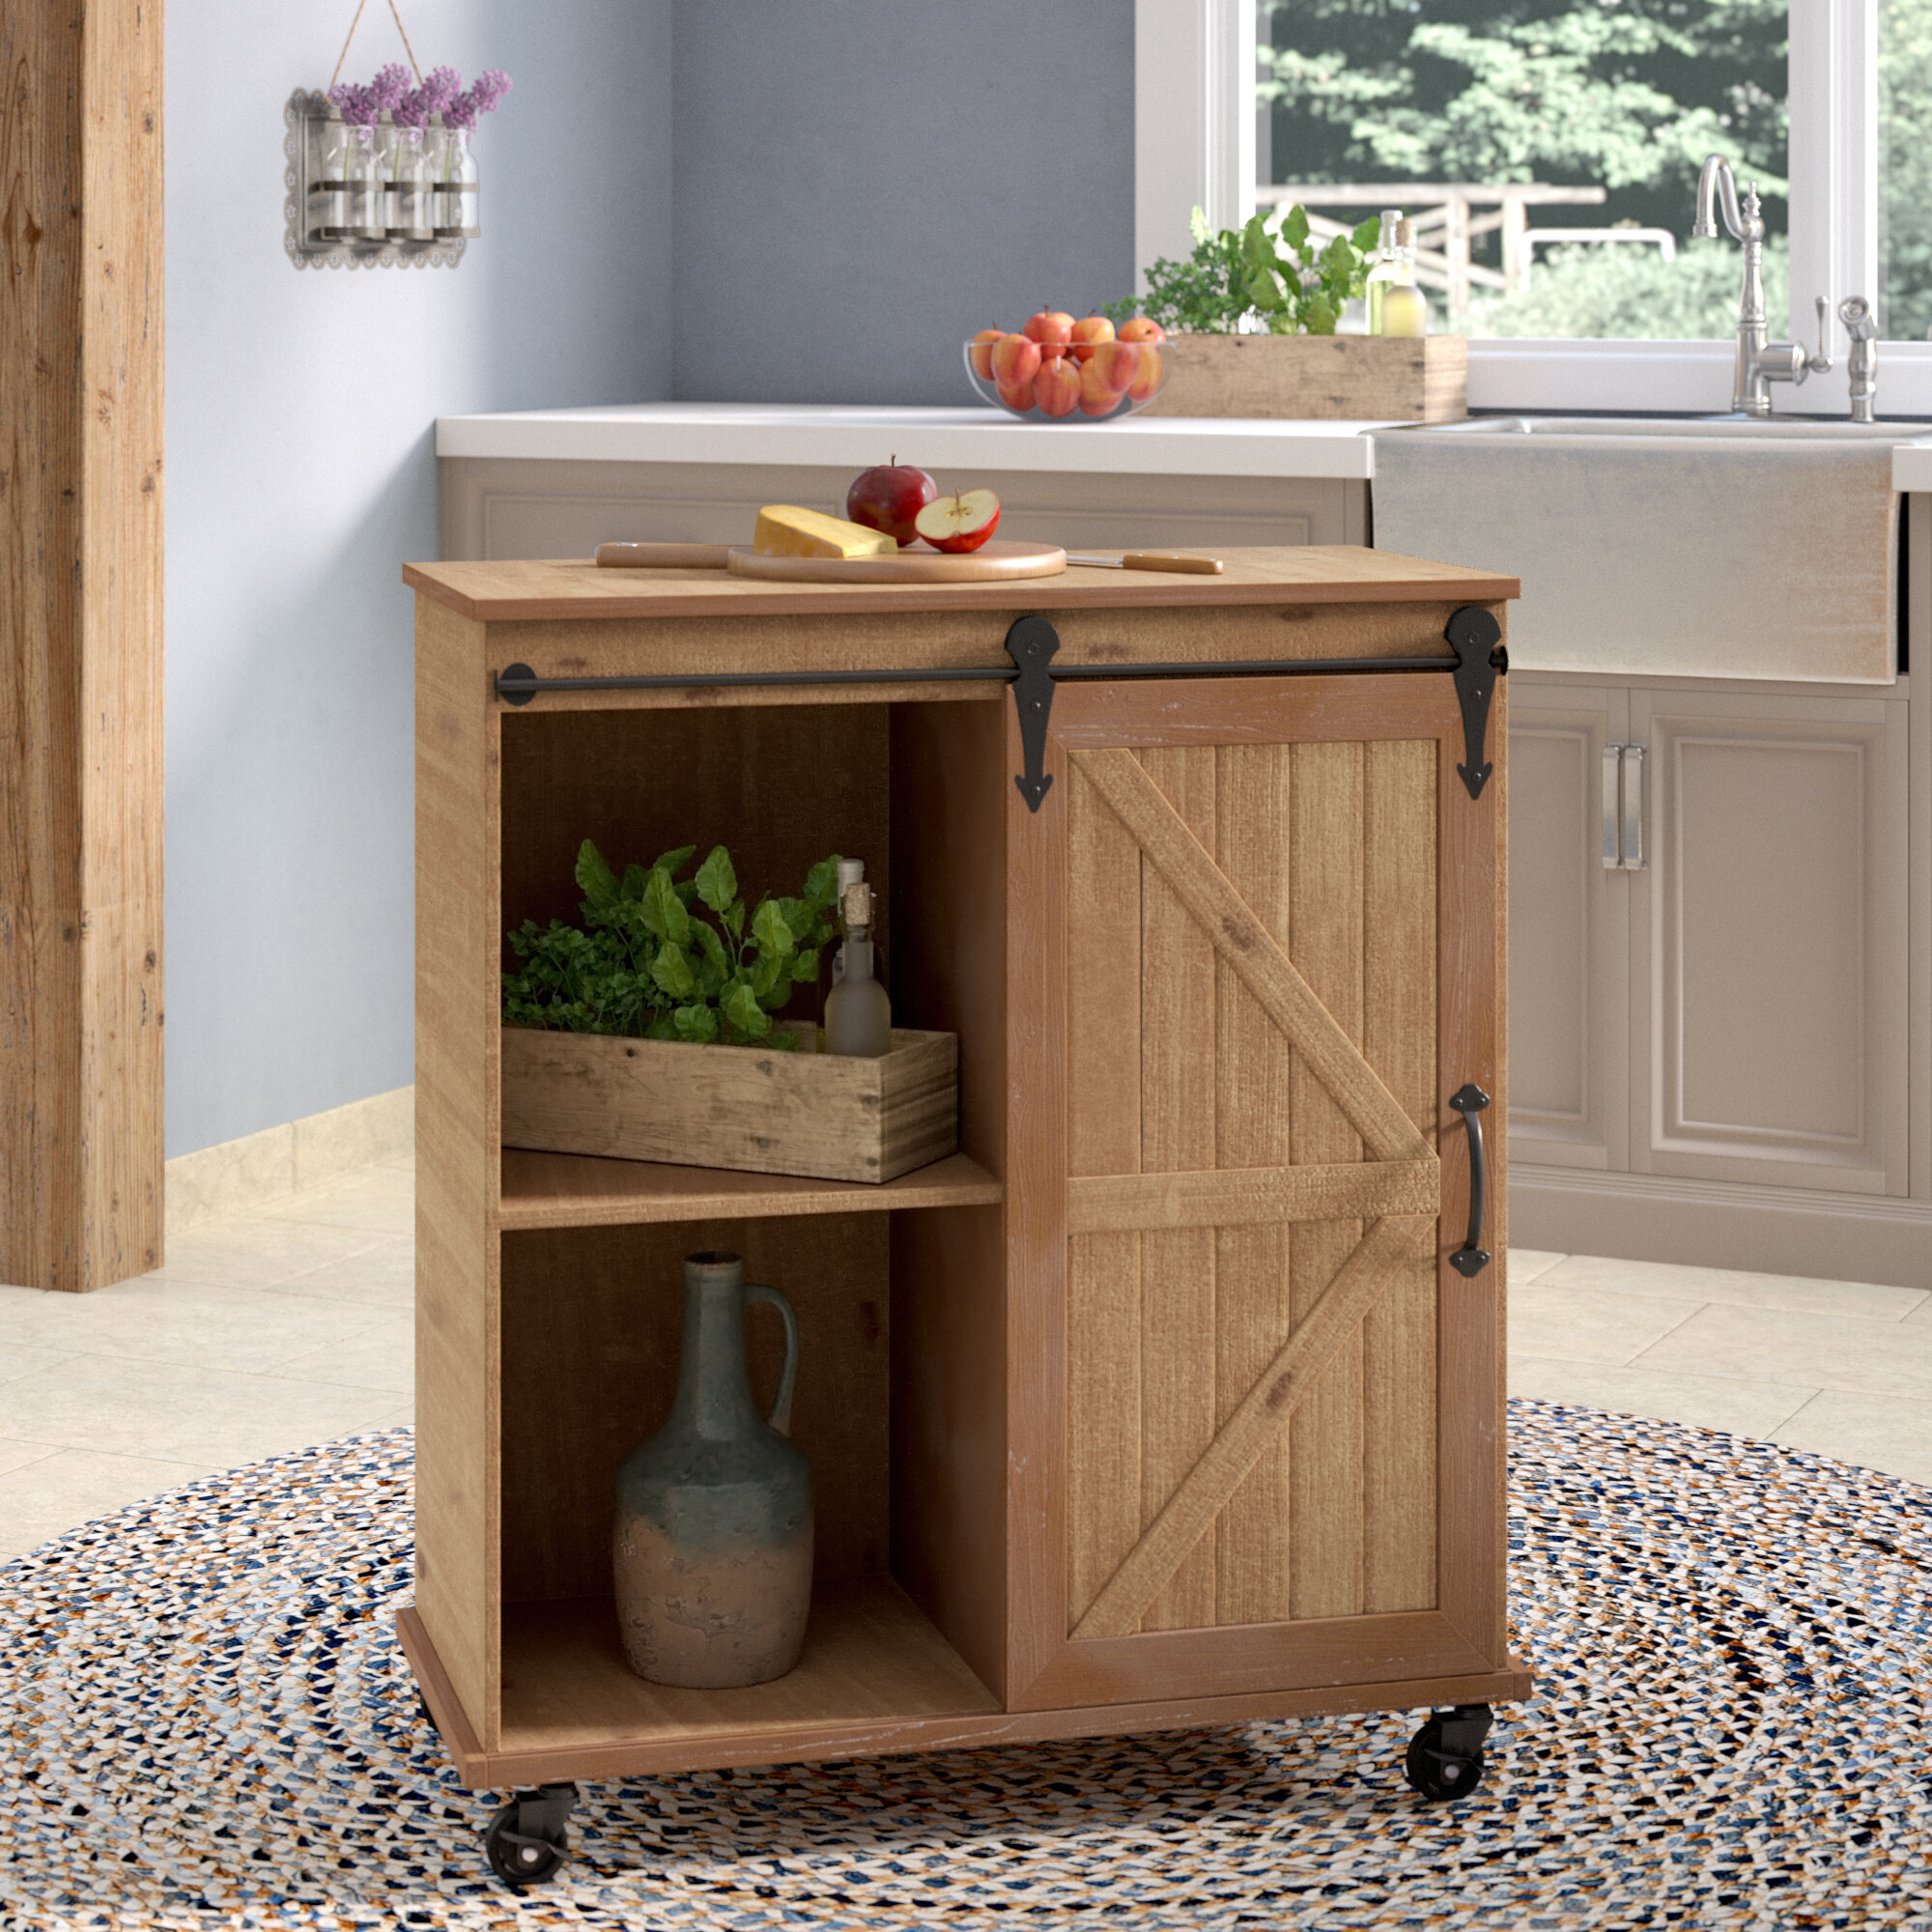 Drawer And Shelves Towel Bar Rolling Kitchen Cart Island With Wood Top Home Style Multi Function Kitchen Carts With Storage And Drawers Furniture Kolenik Kitchen Dining Room Furniture